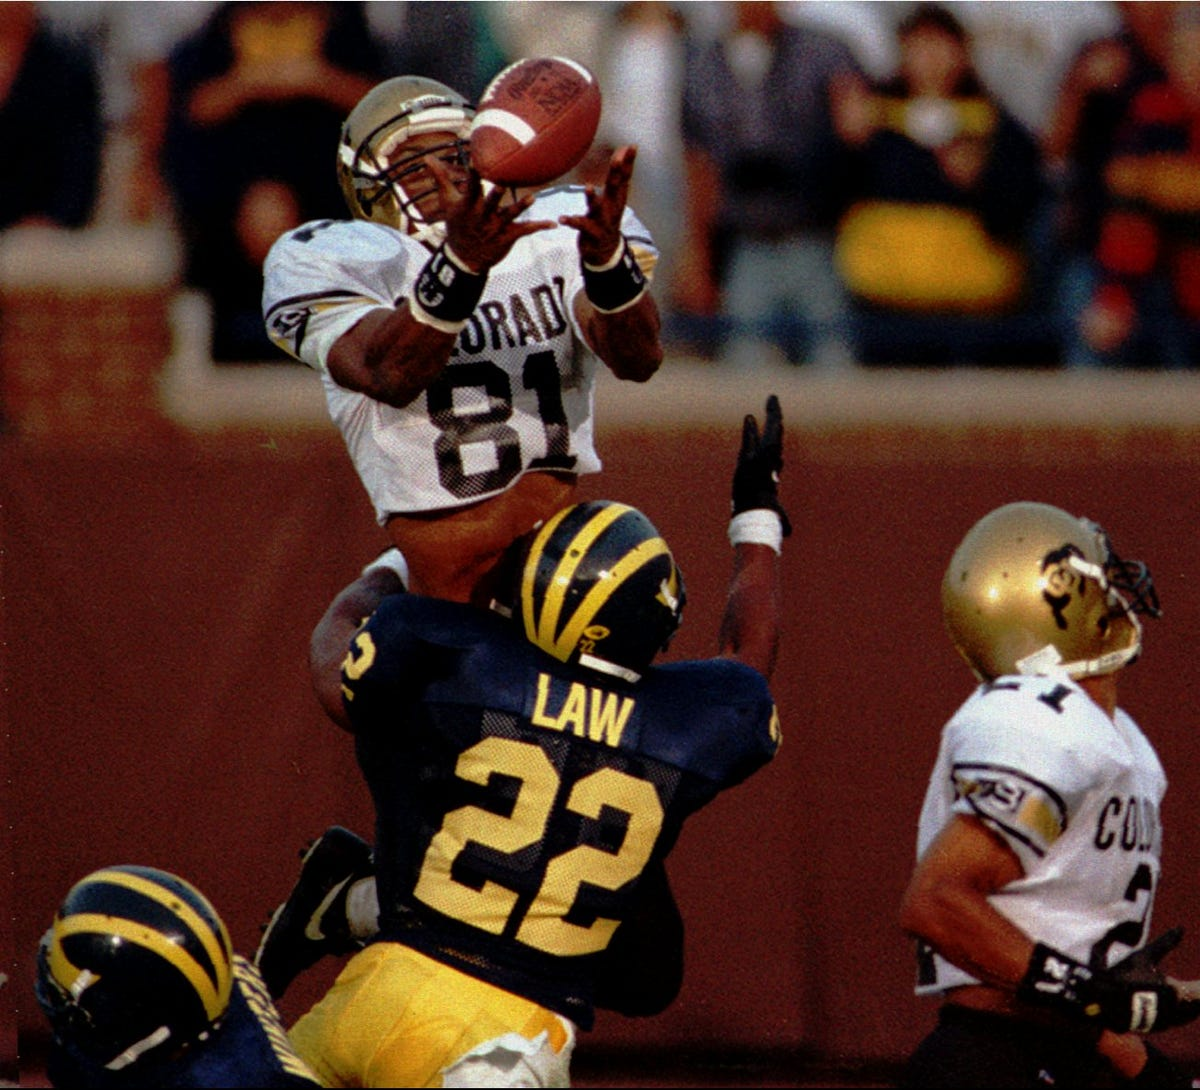 sports shoes 47ab5 c6b18 Colorado's miracle touchdown at Michigan still amazes after ...